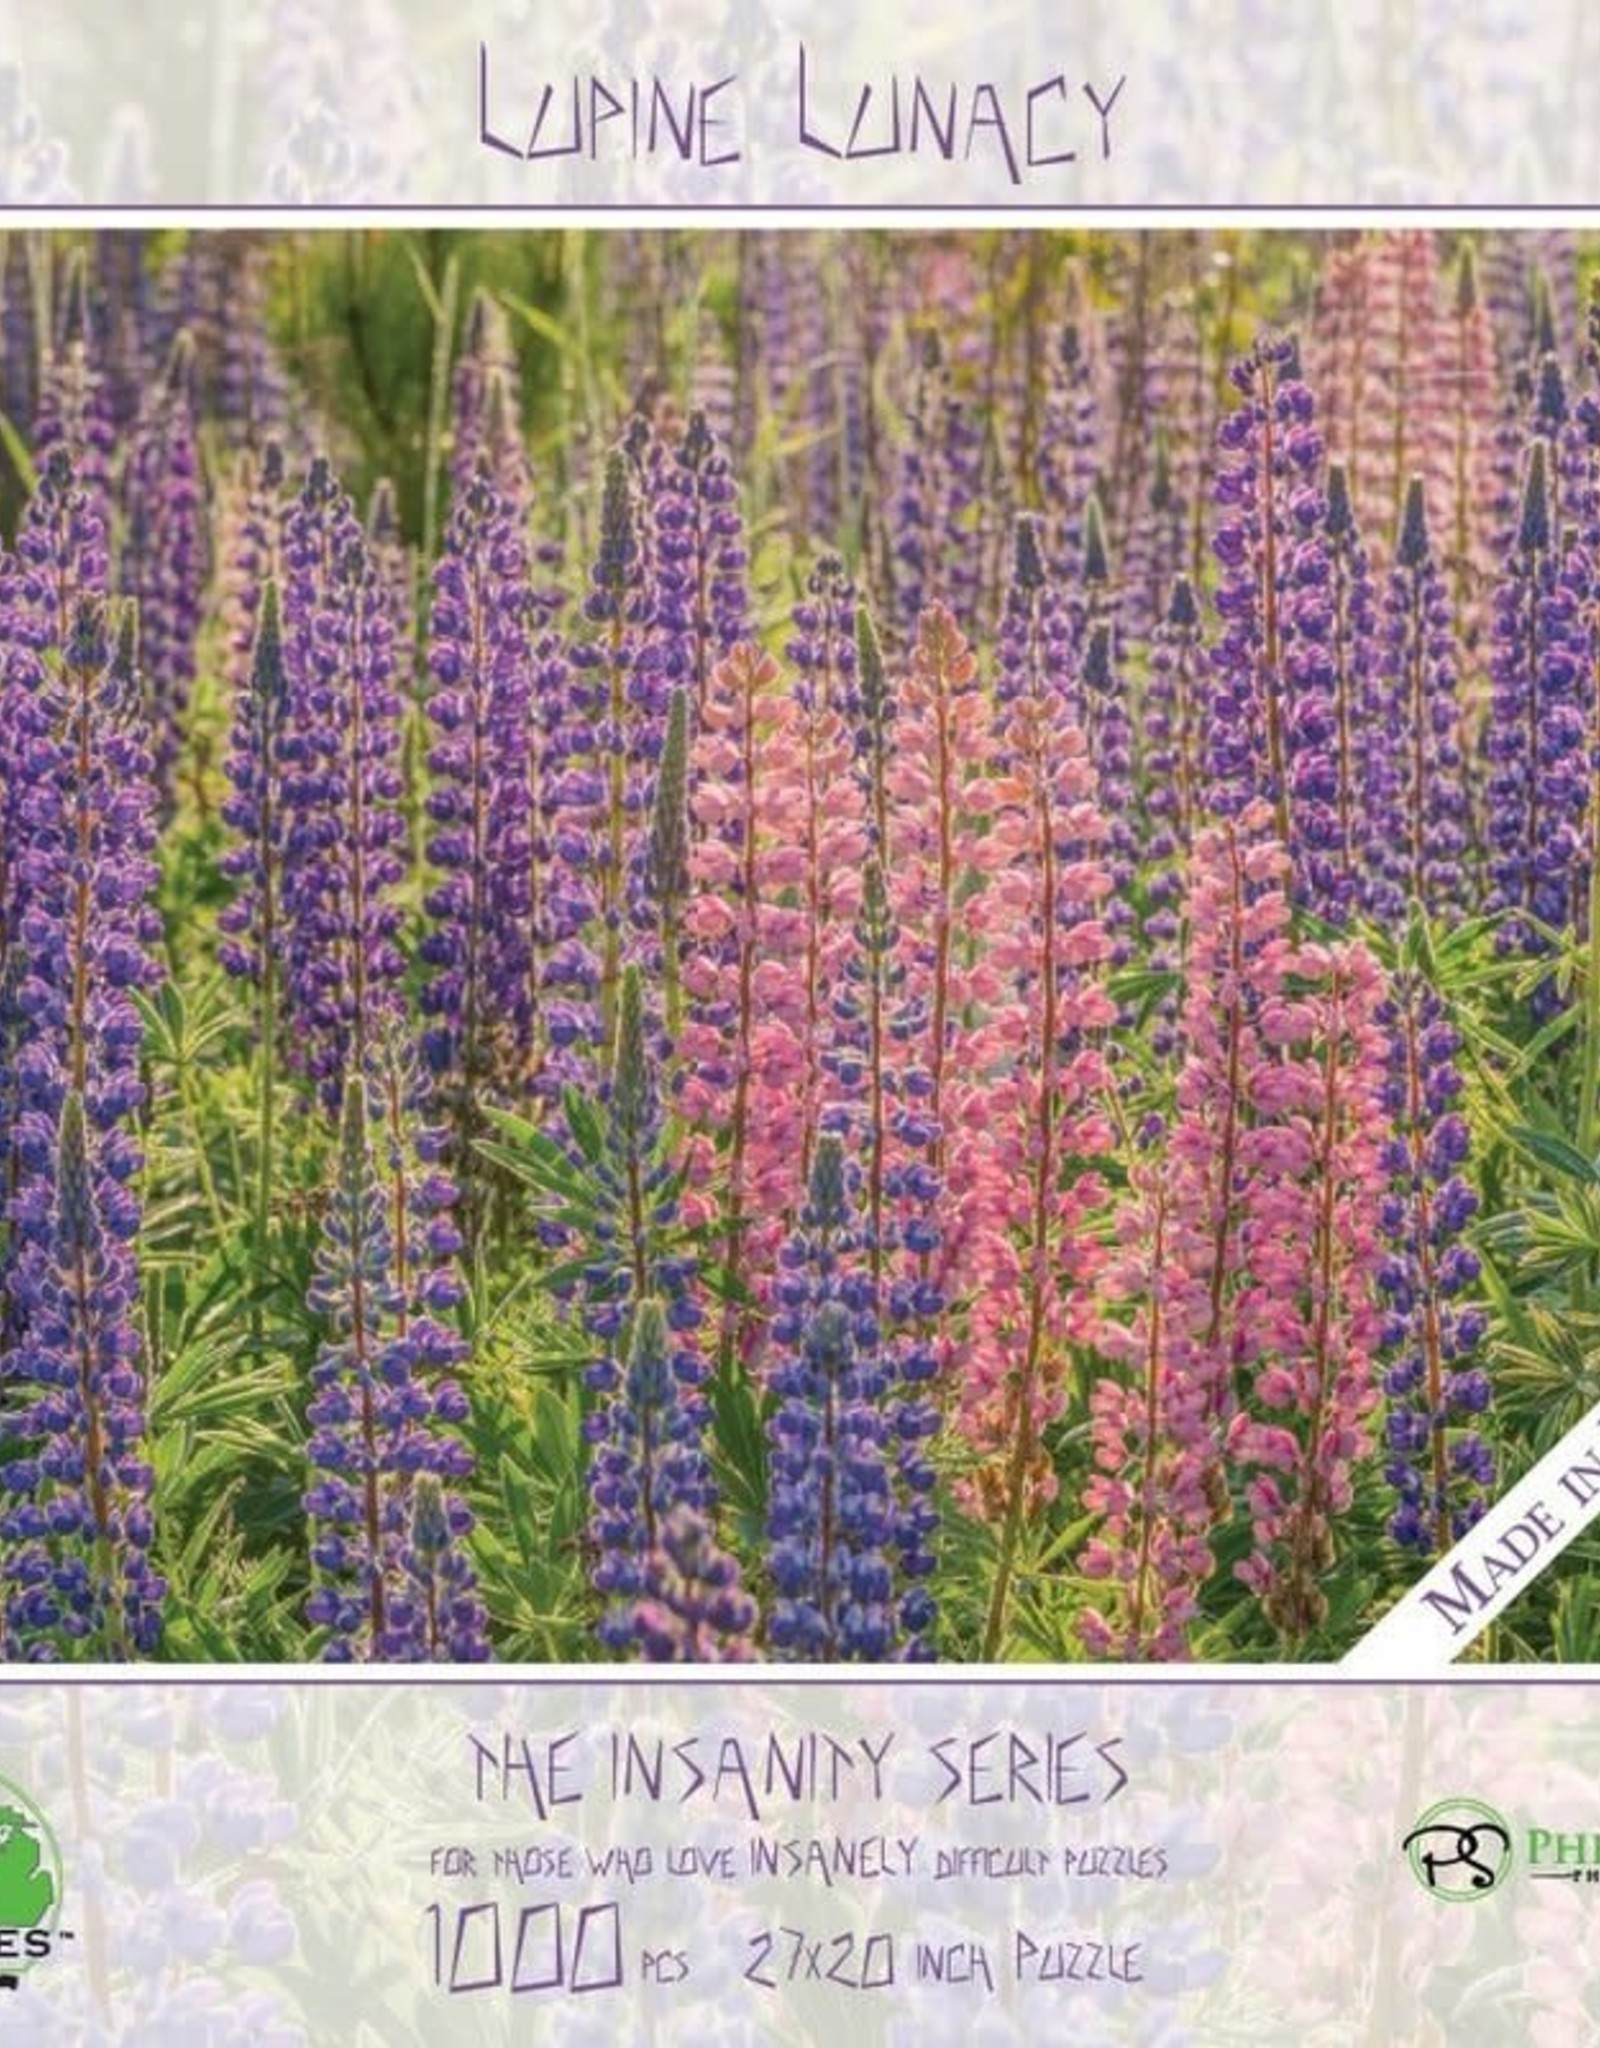 MI Puzzles (Phil Stagg Photography) 1000 Pc Puzzle Lupine Lunacy